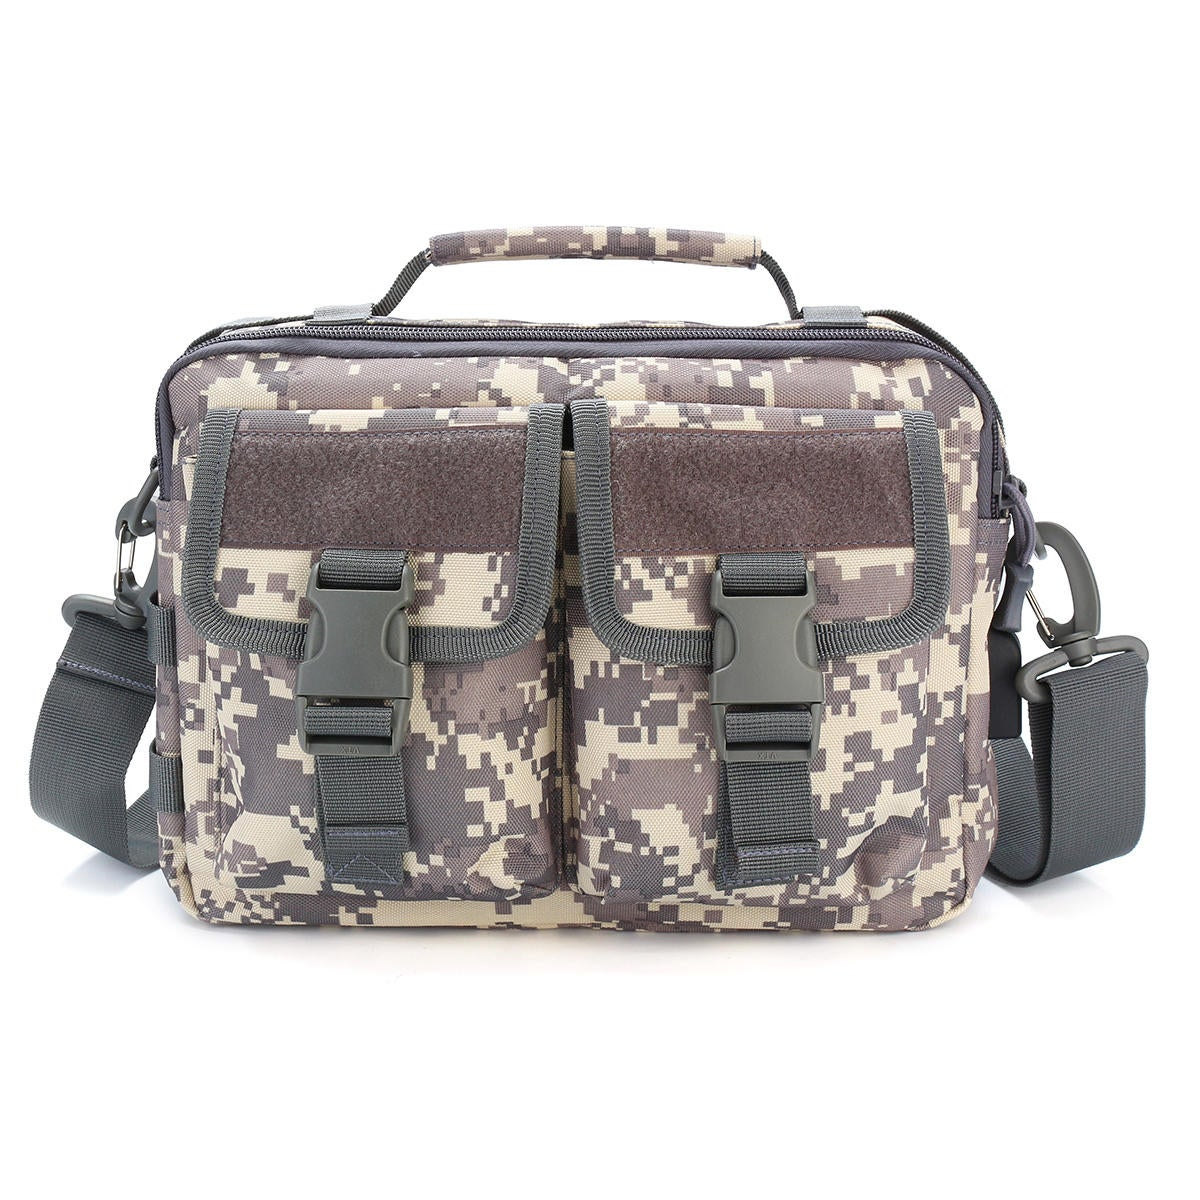 Outdoor Tactical Backpack Waterproof Multifunctional Military Climbing Hiking Cycling Shoulder Bags ACU COLOR